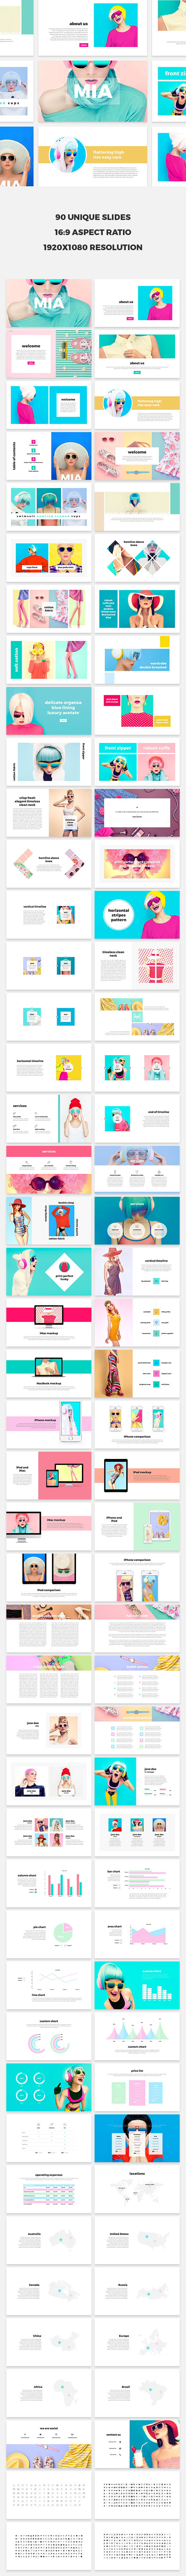 Mia Keynote Template - PowerPoint Templates Presentation Templates